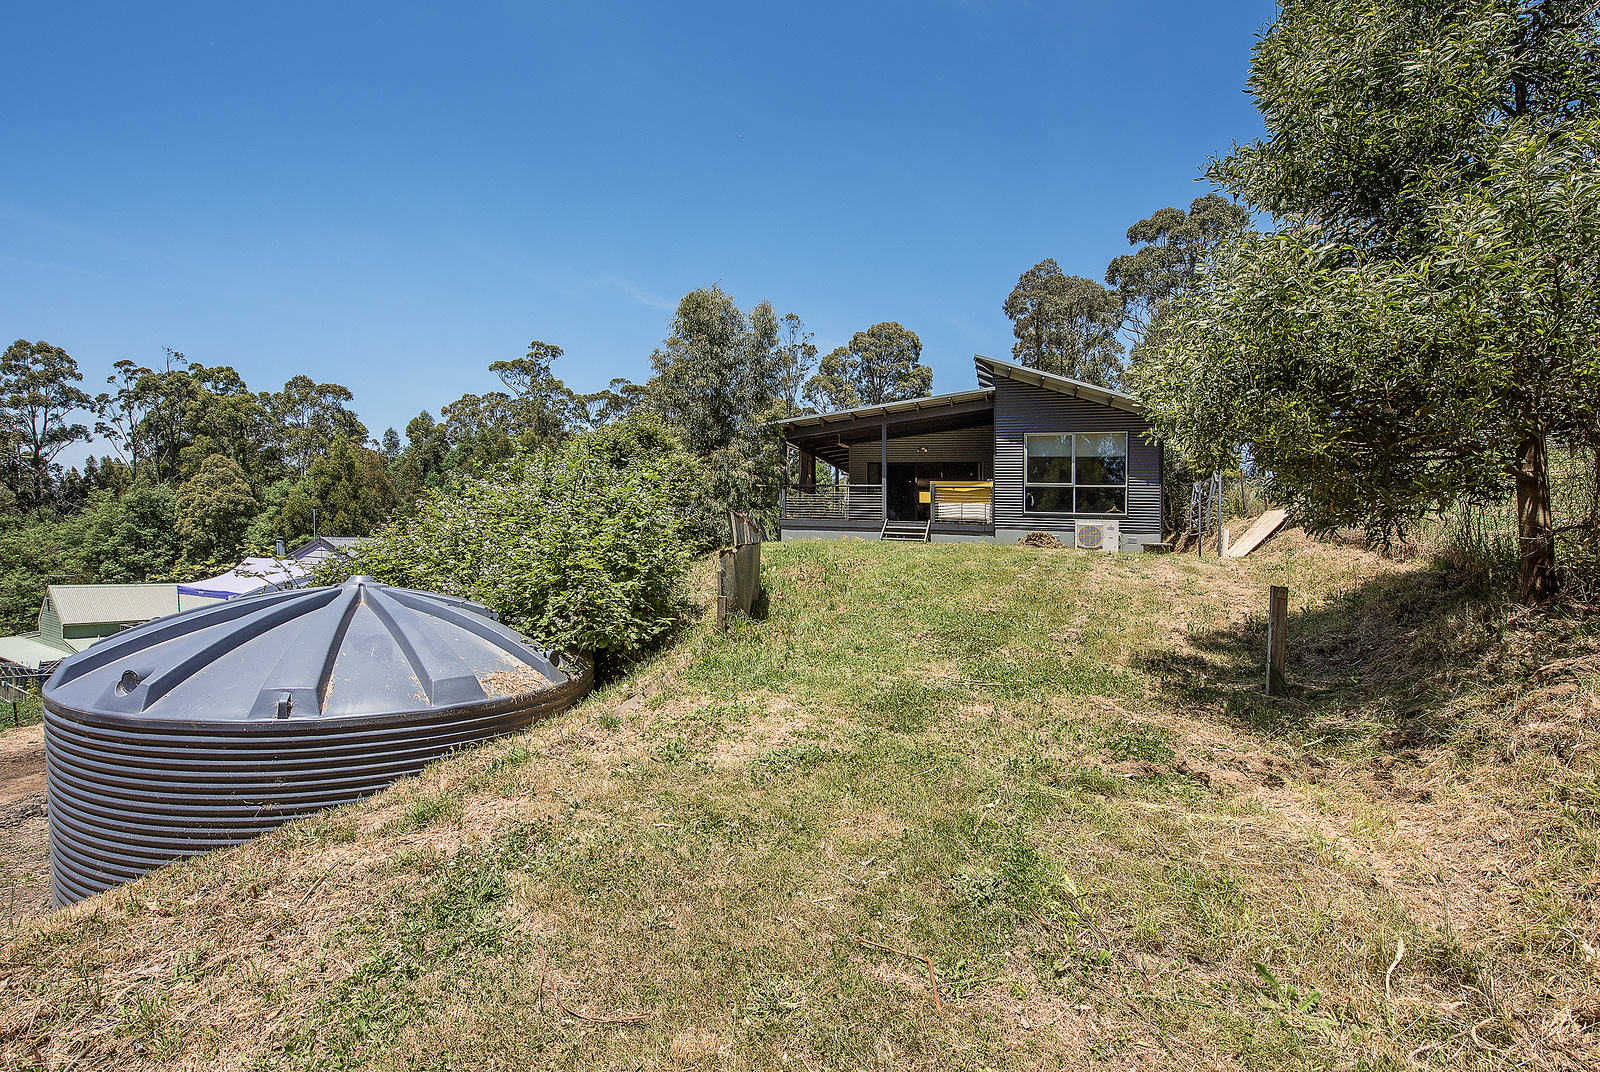 192 WHITTLESEA-KINGLAKE ROAD KINGLAKE